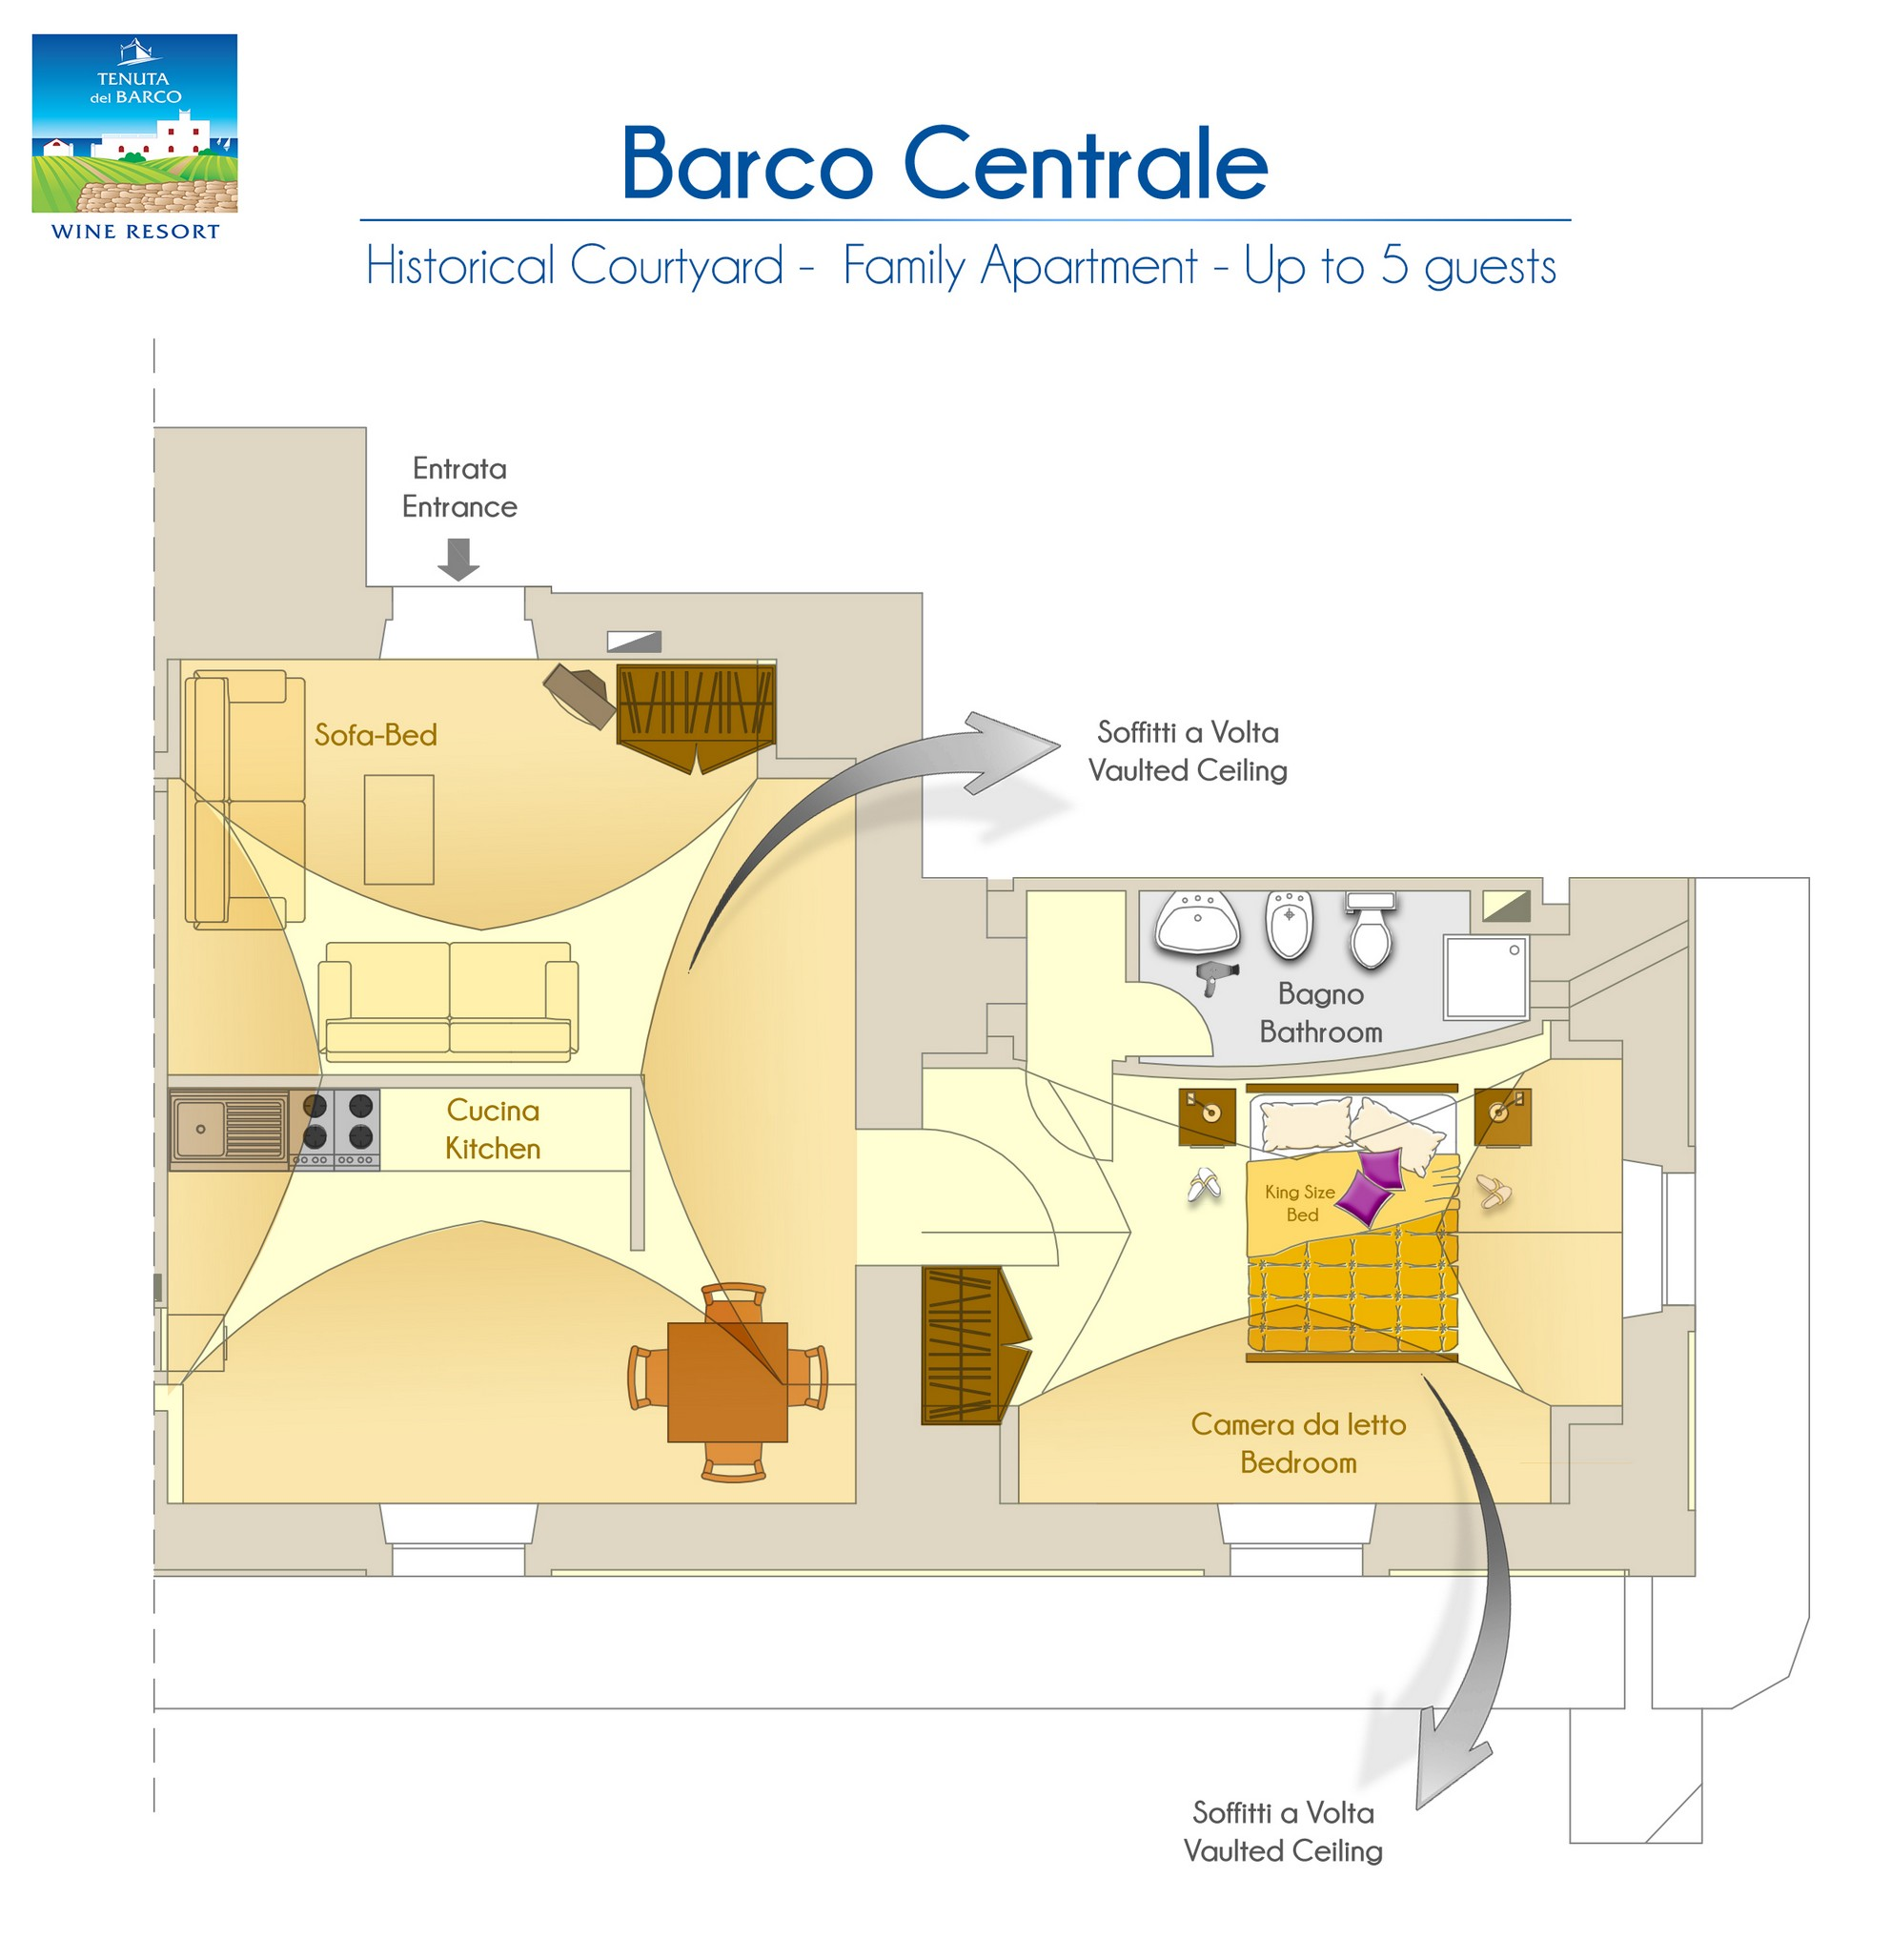 Barco Centrale